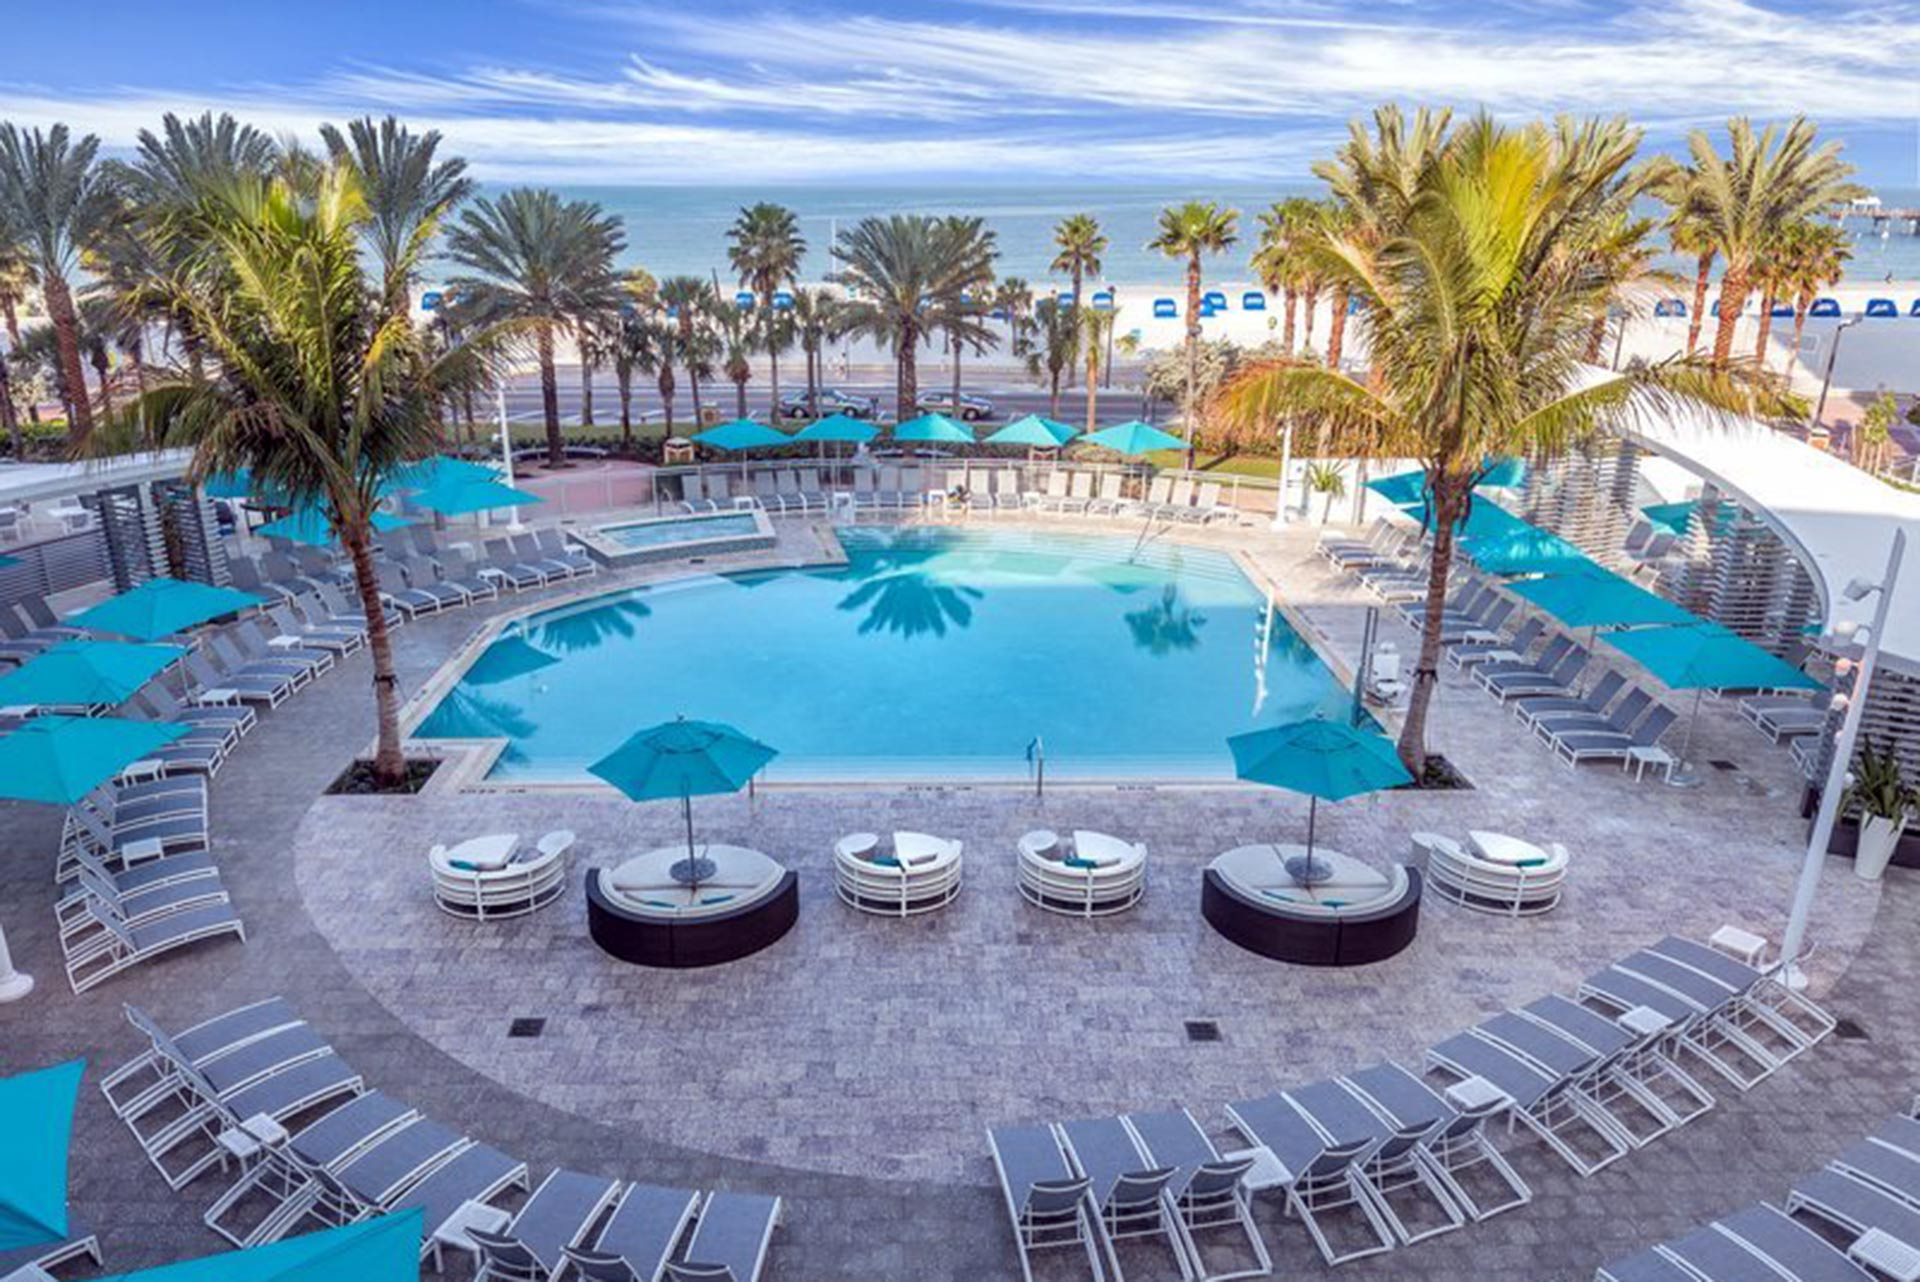 Wyndham Grand Clearwater Beach Resort in Clearwater, Florida